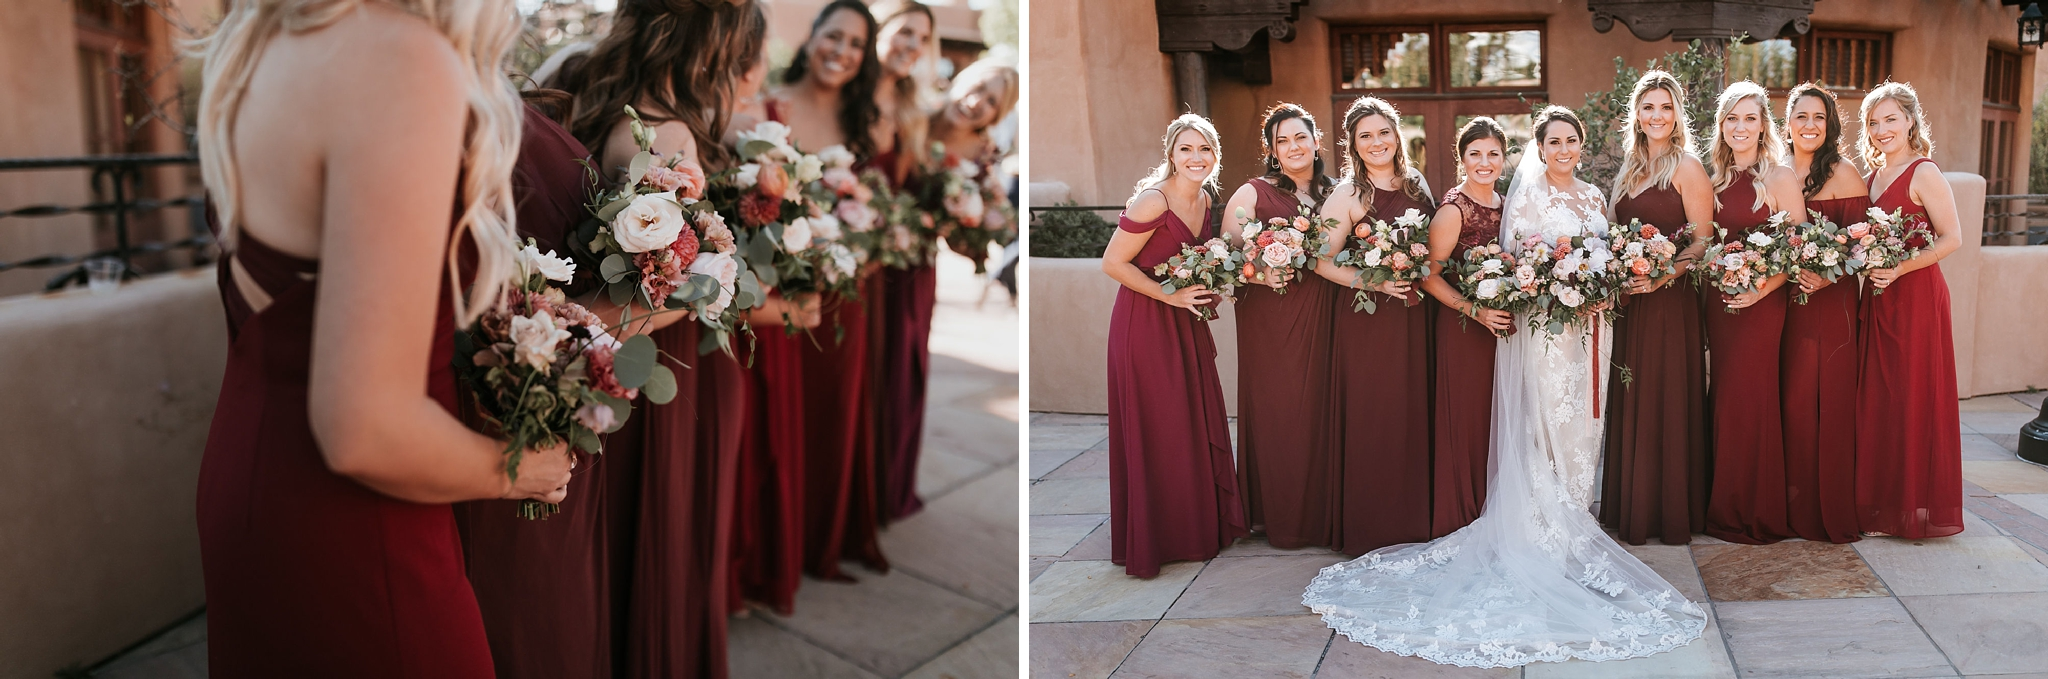 Alicia+lucia+photography+-+albuquerque+wedding+photographer+-+santa+fe+wedding+photography+-+new+mexico+wedding+photographer+-+new+mexico+wedding+-+new+mexico+wedding+-+colorado+wedding+-+bridesmaids+-+bridesmaid+style_0052.jpg